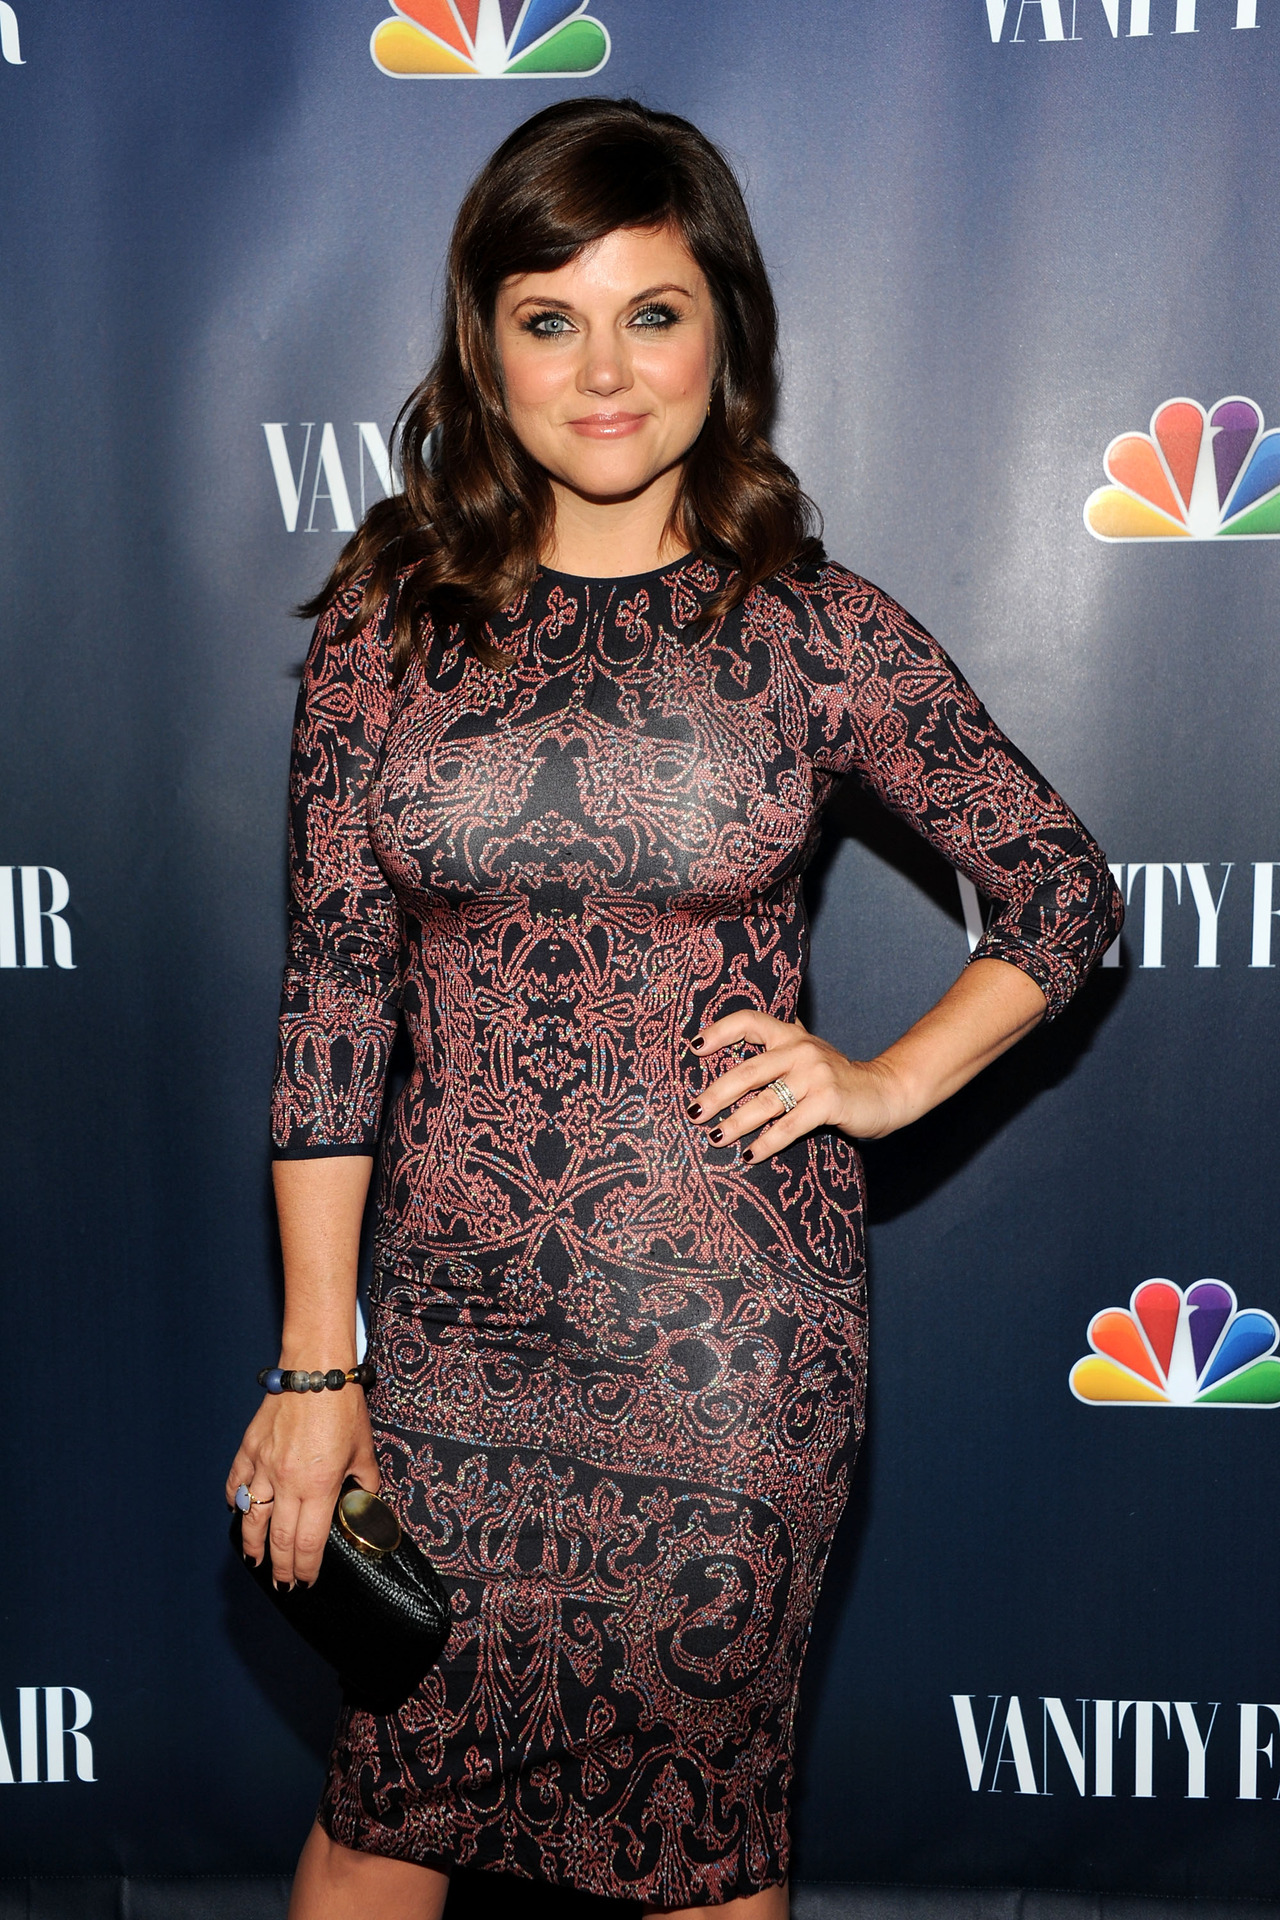 Tiffani-Amber Thiessen Tiffani-Amber Thiessen new images